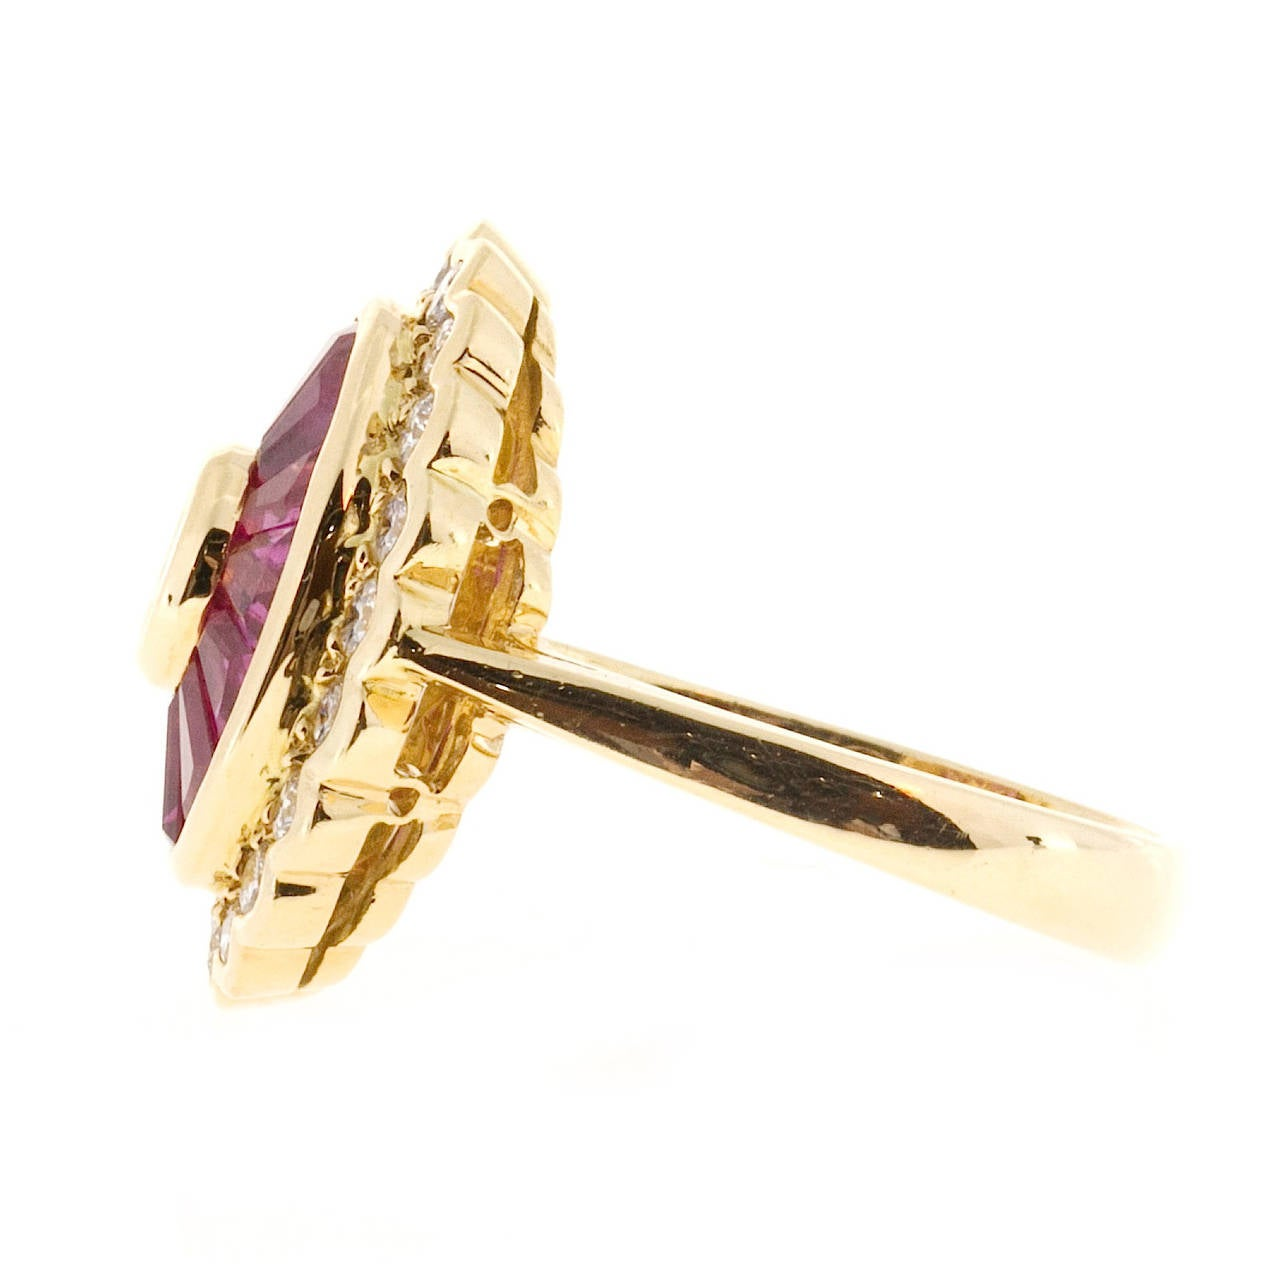 Baguette Cut Diamond Baguette Ruby Gold Cocktail Ring For Sale